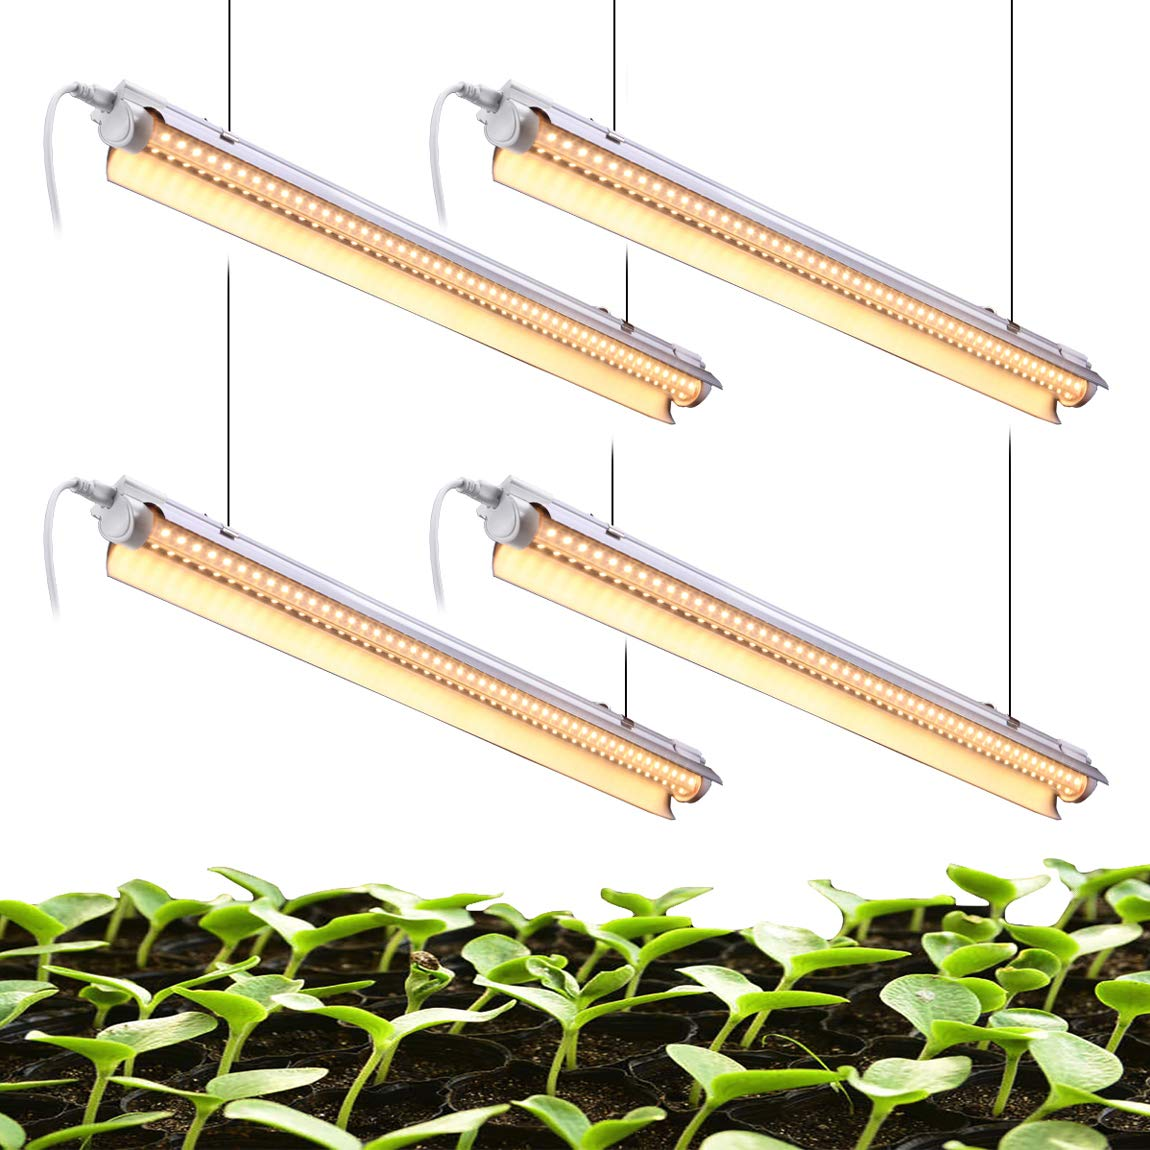 Grow Shop Light 2-Row V-Shape T8 Integrated Growing Lamp Fixture EAMATE White Light Full Spectrum LED Grow Light 24W x 4 Pack of 4 with ON//Off Switch Plug and Play